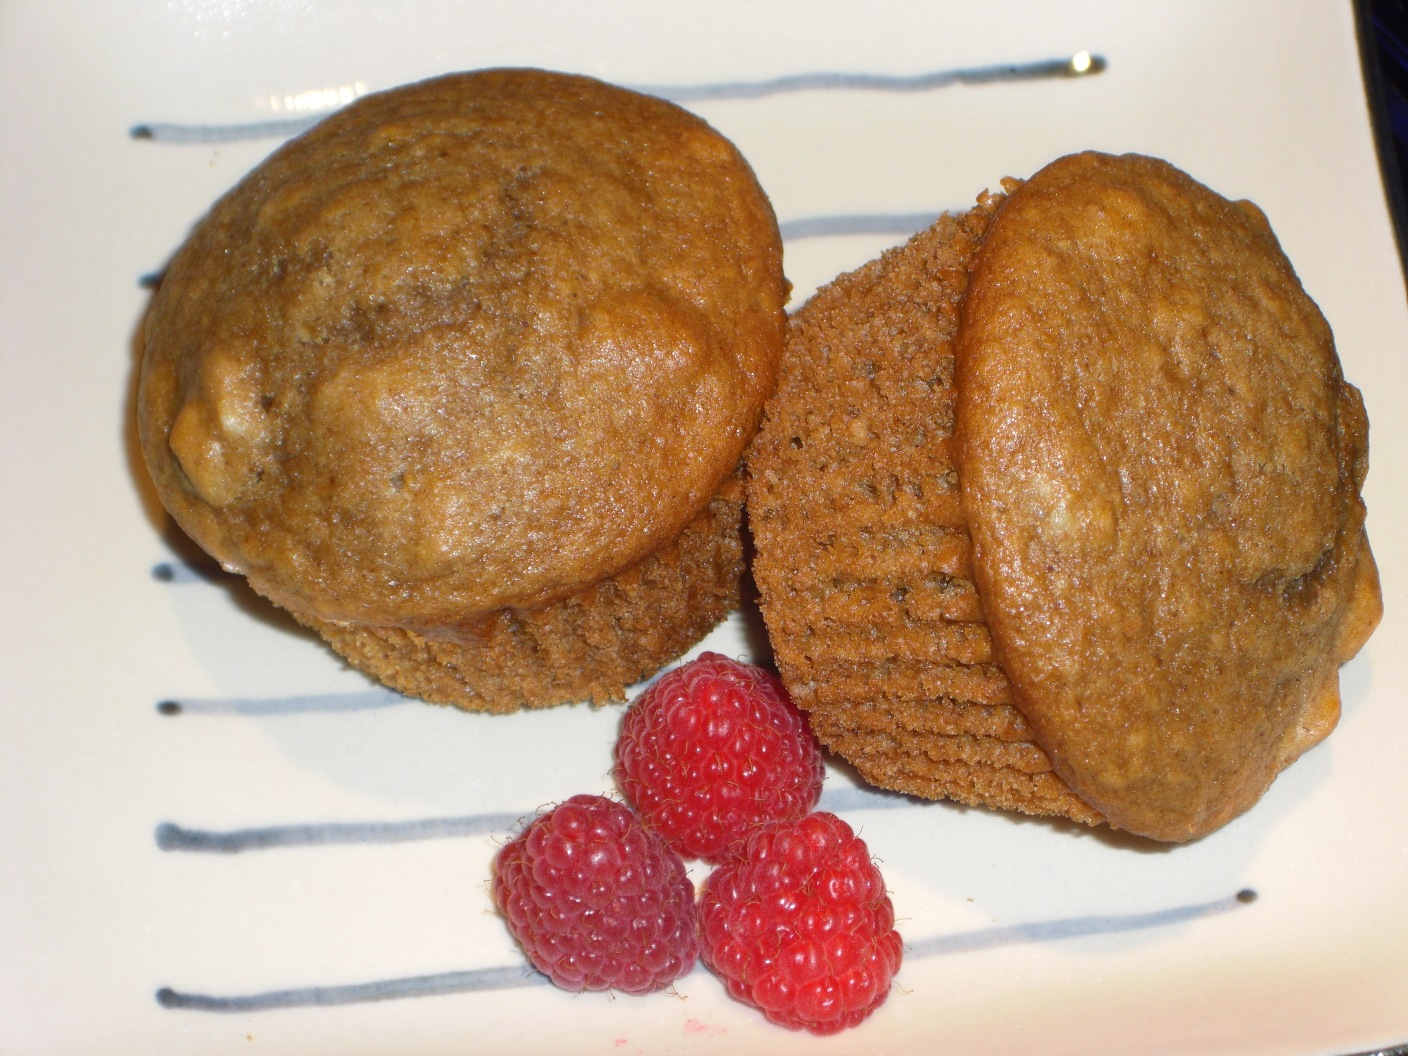 ... applesauce muffins makes 16 18 muffins 1 ¼ cups applesauce 1 cup